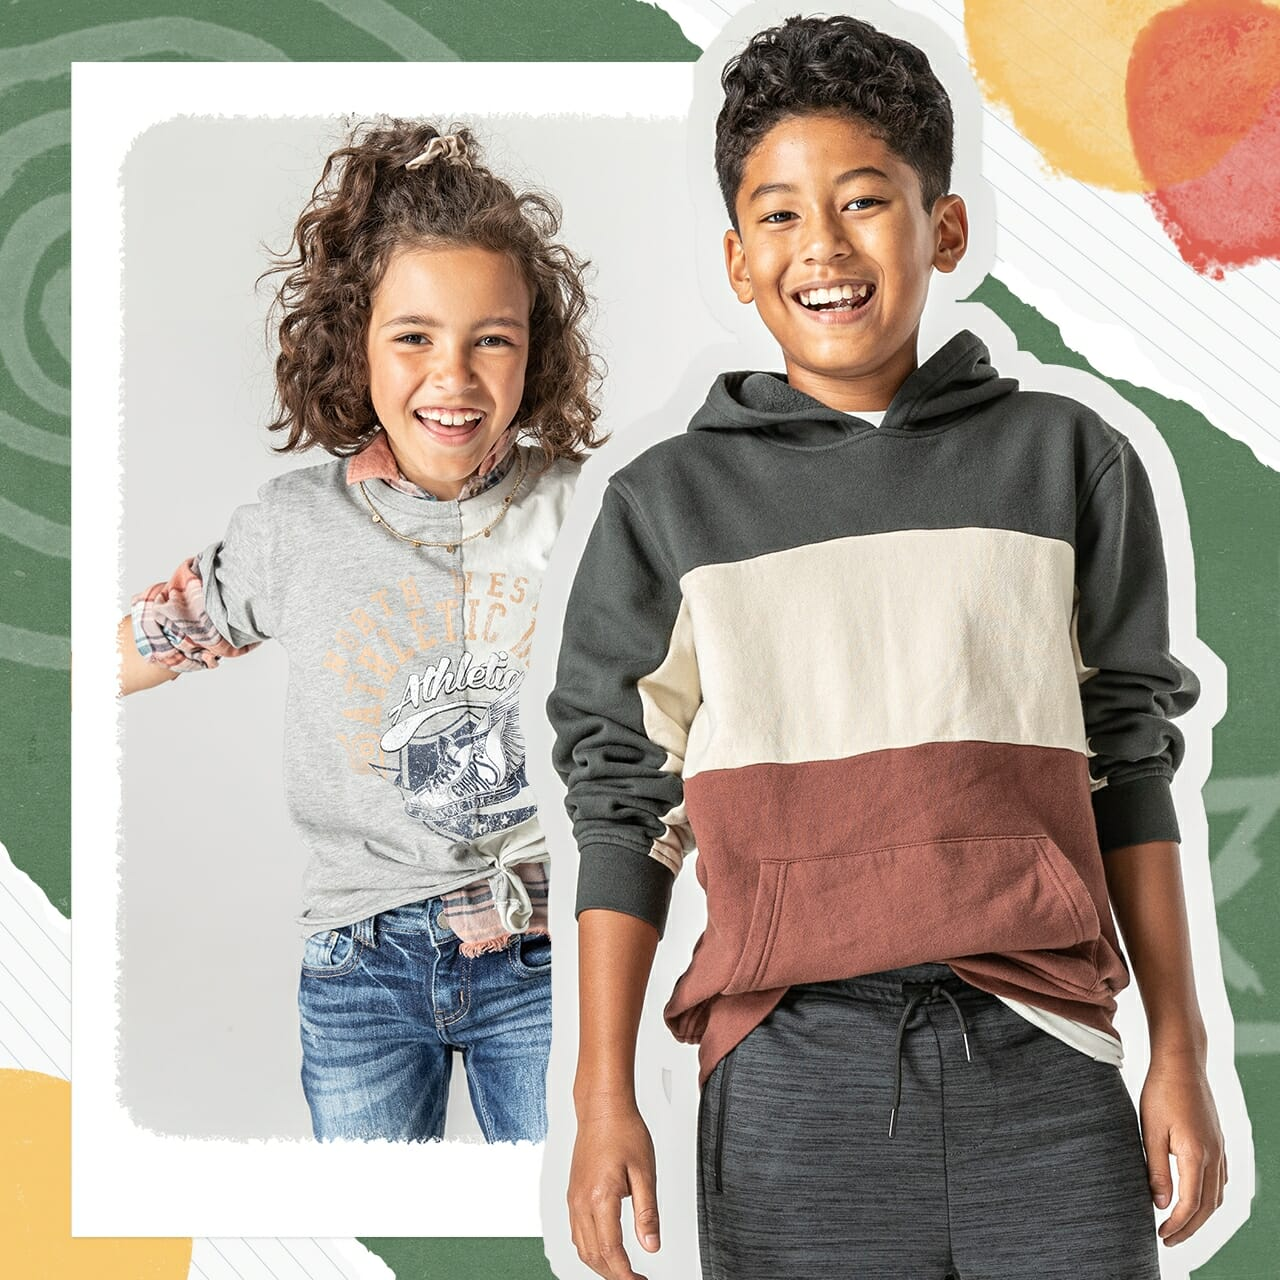 Two kids wearing Buckle clothing and smiling.